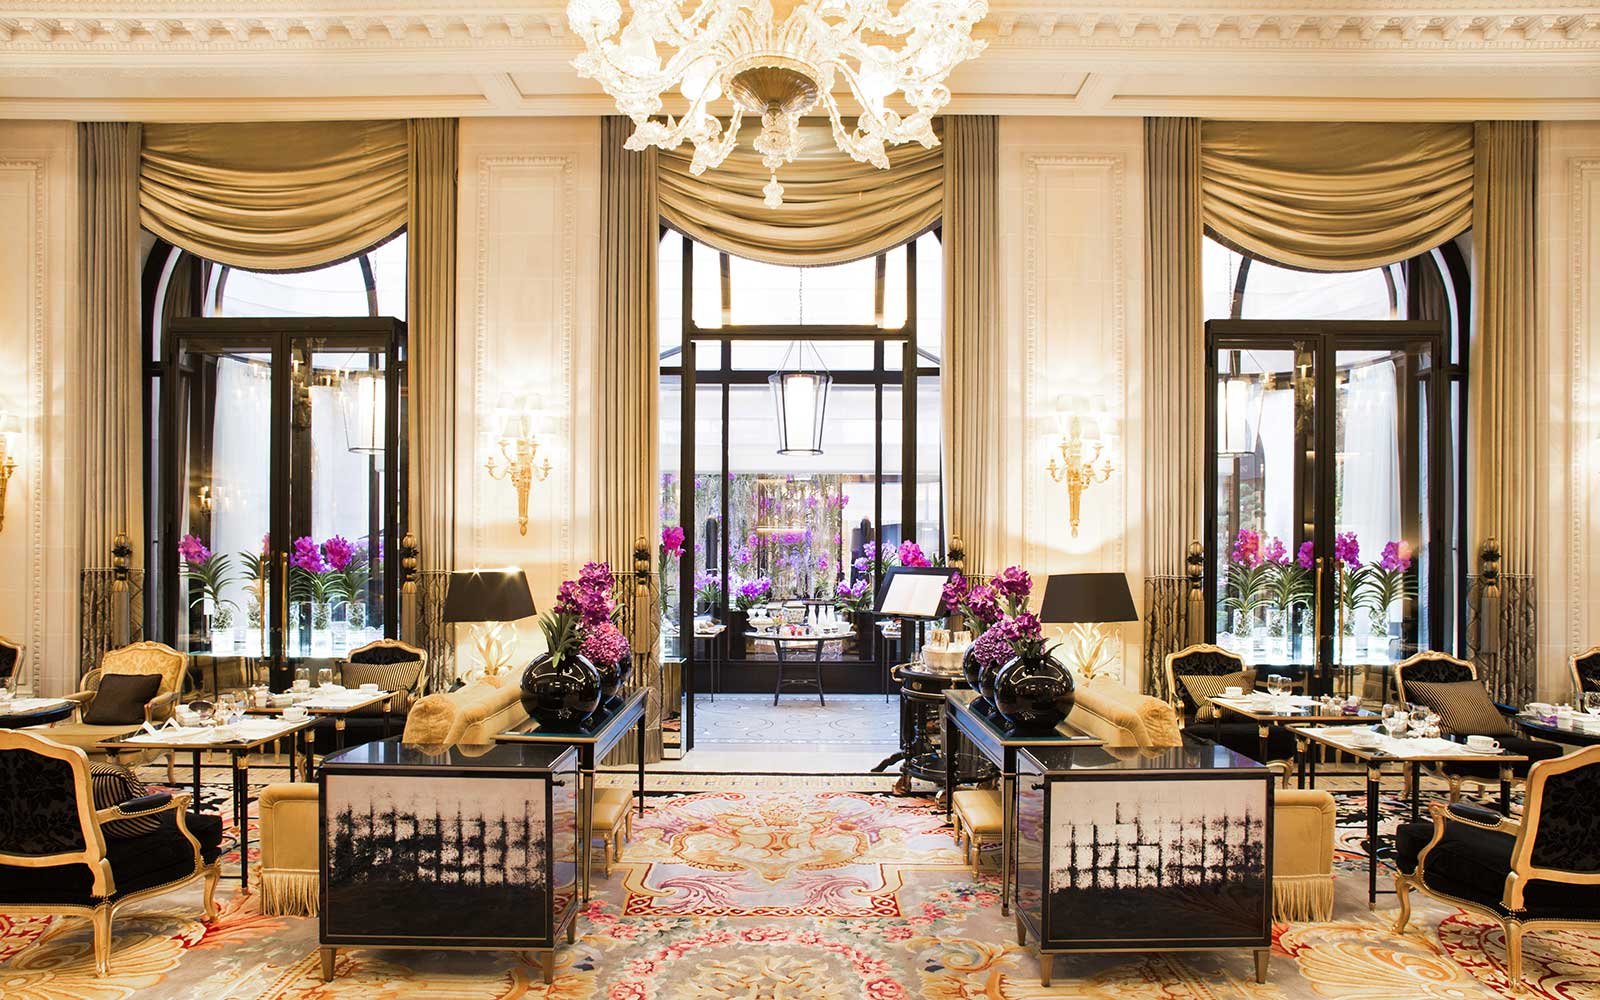 Four Seasons Hotel George V in Paris